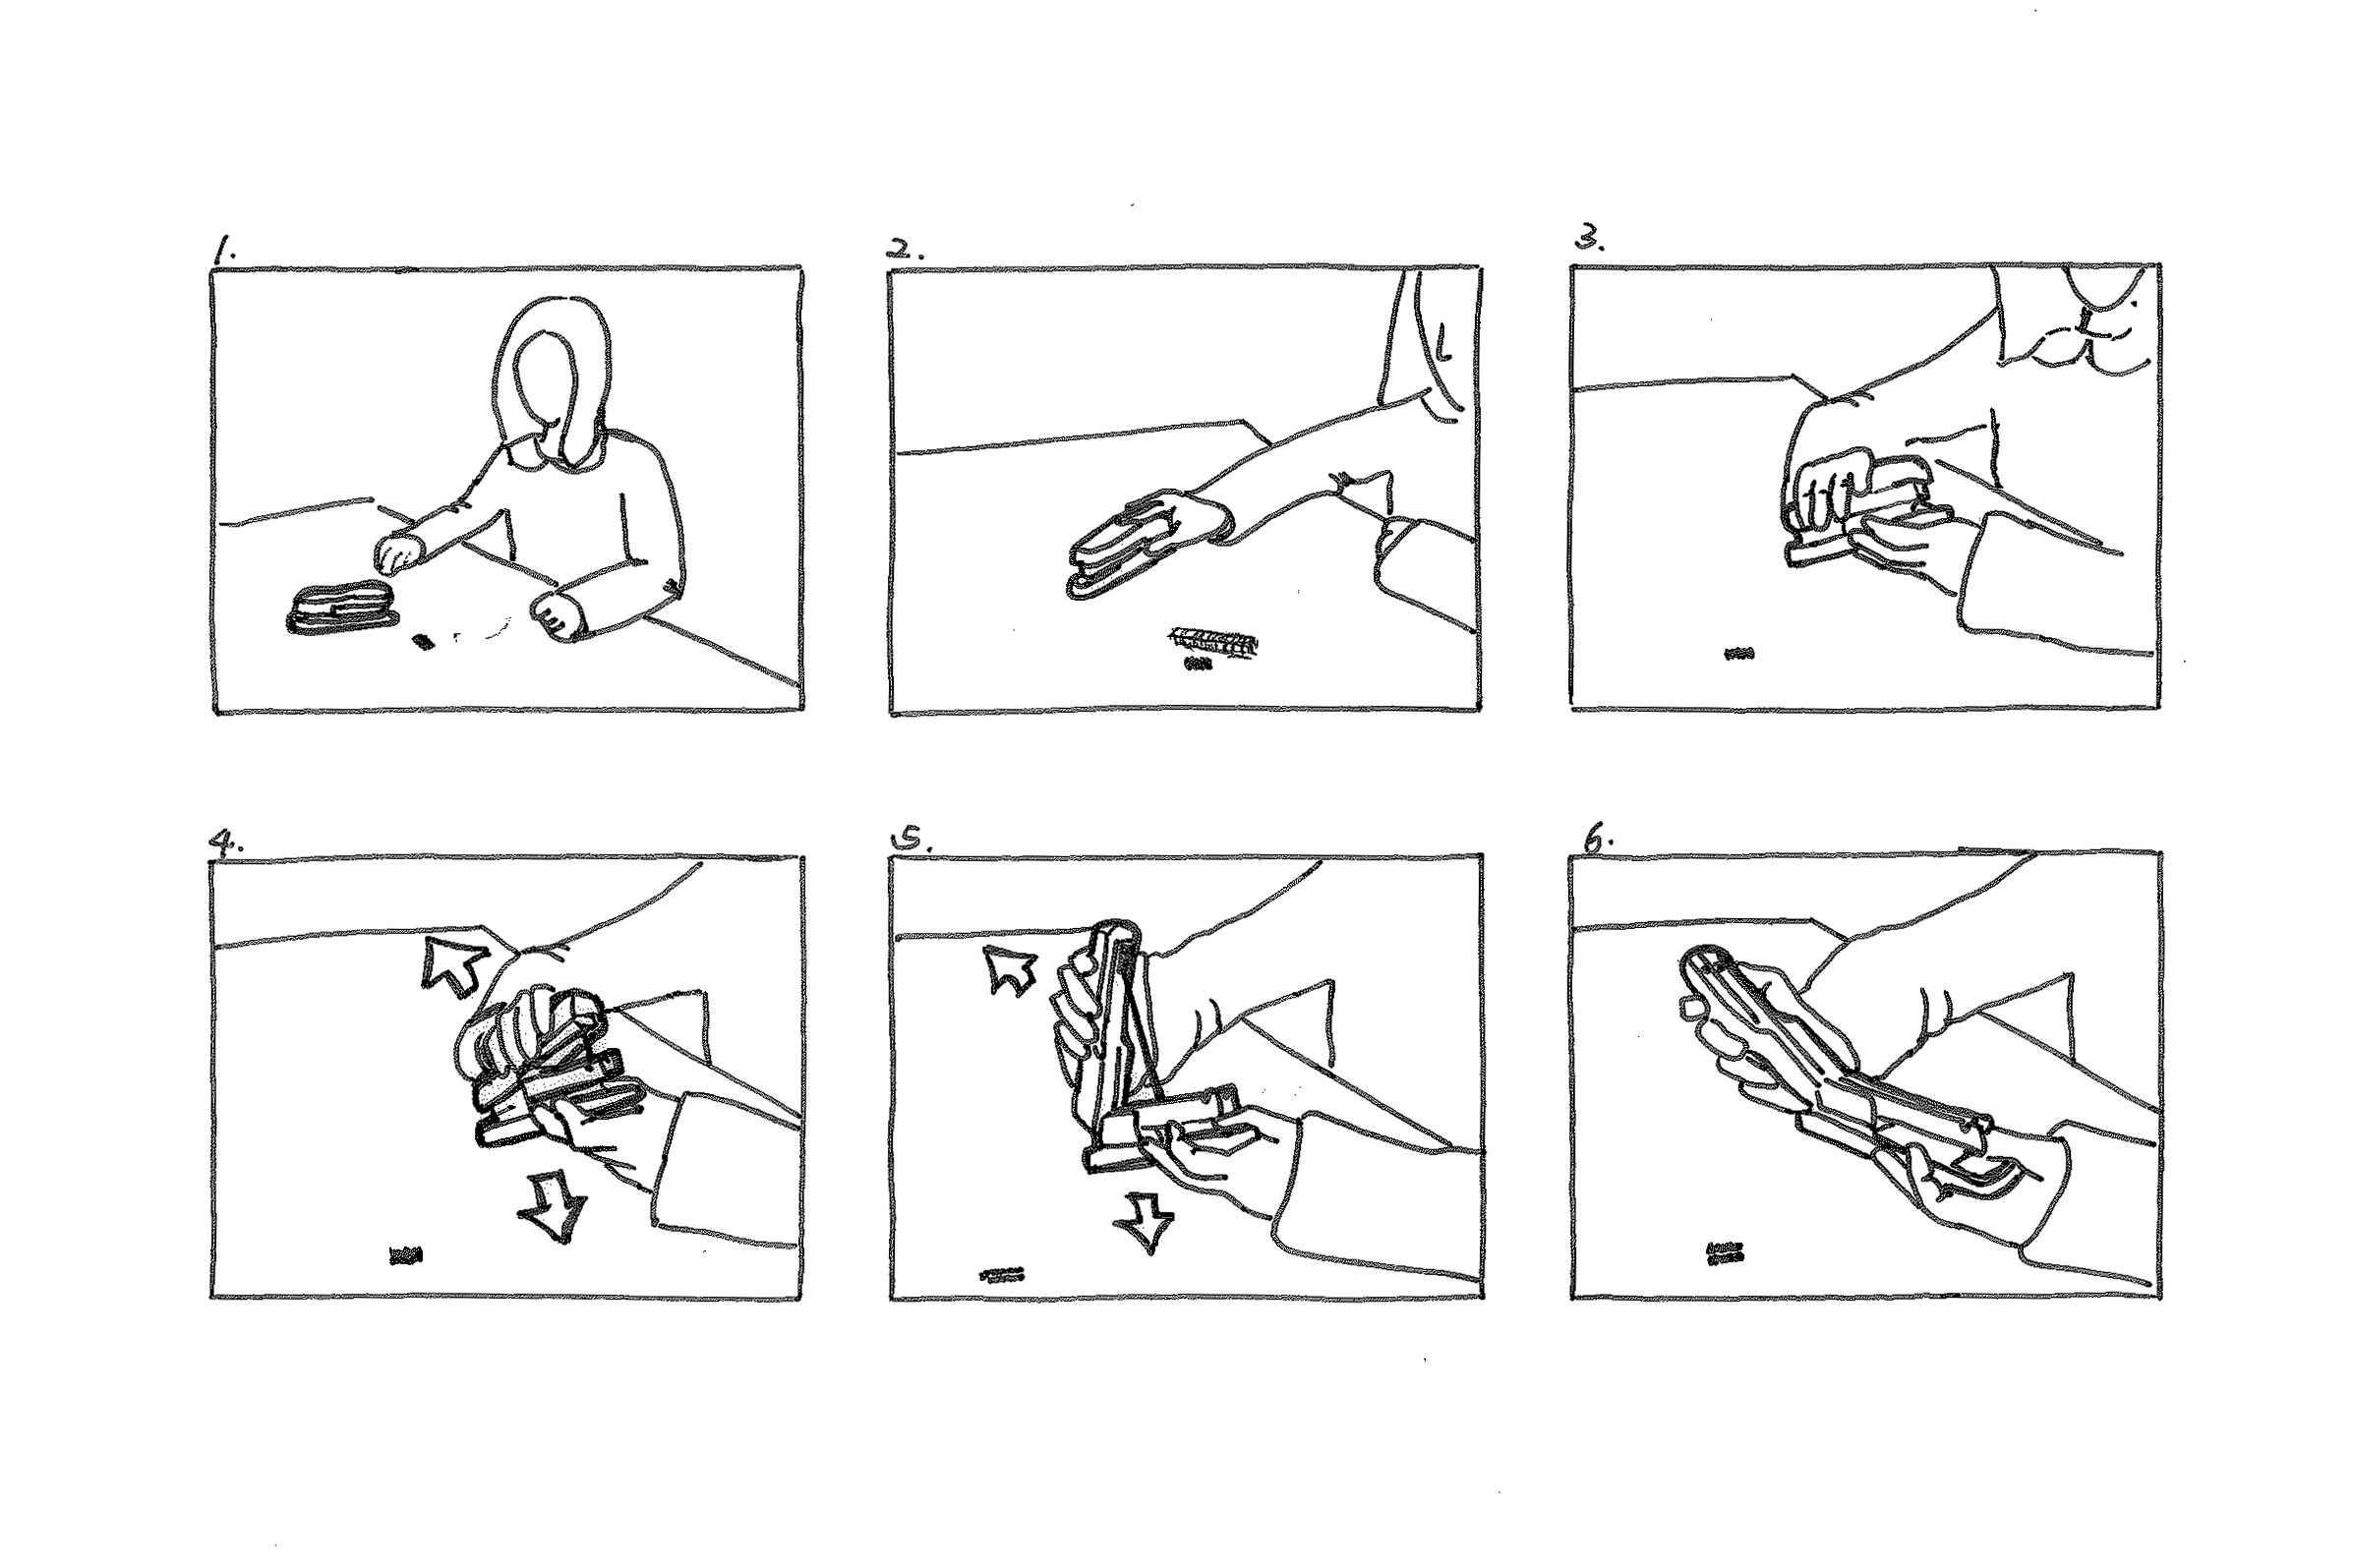 Storyboard: how to refill a stapler 1